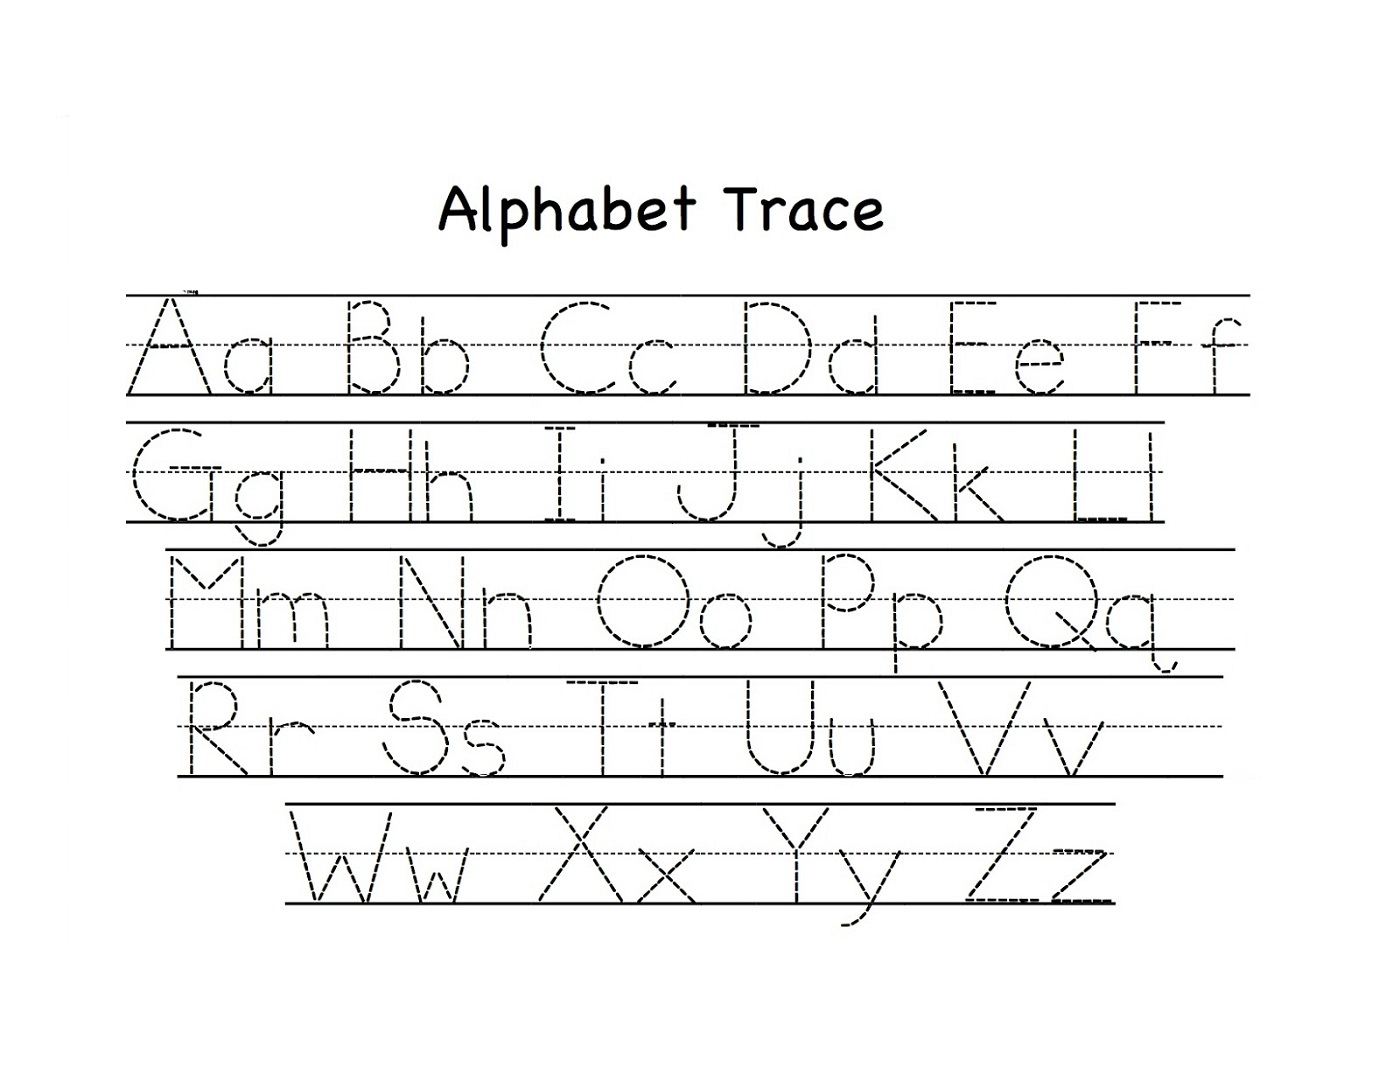 Alphabet Tracing Worksheets A-Z Printable | Loving Printable with regard to A-Z Tracing Letters Worksheets